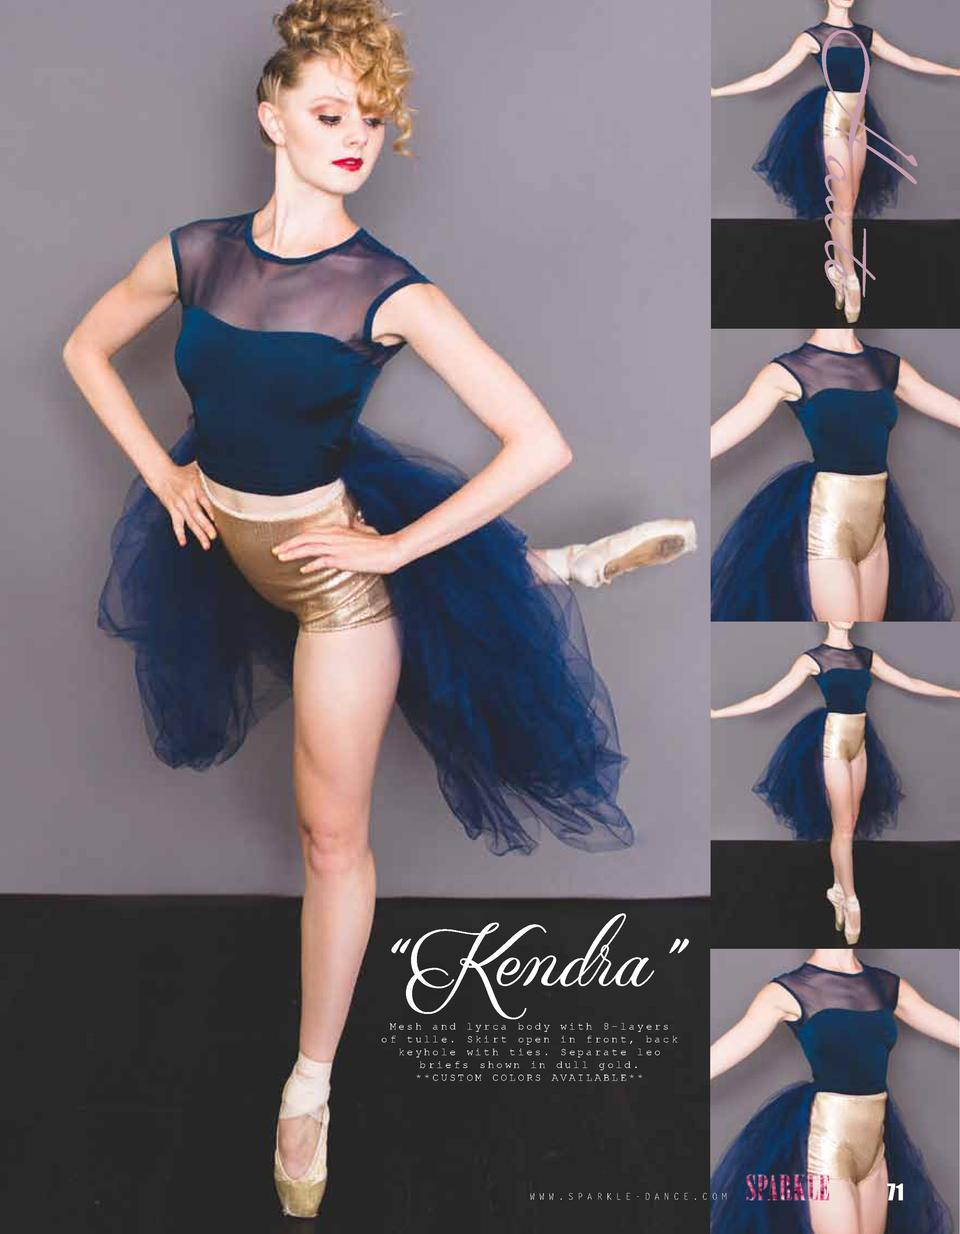 Haute    Kendra    Mesh and lyrca body with 8-layers of tulle. Skirt open in front, back keyhole with ties. Separate leo b...